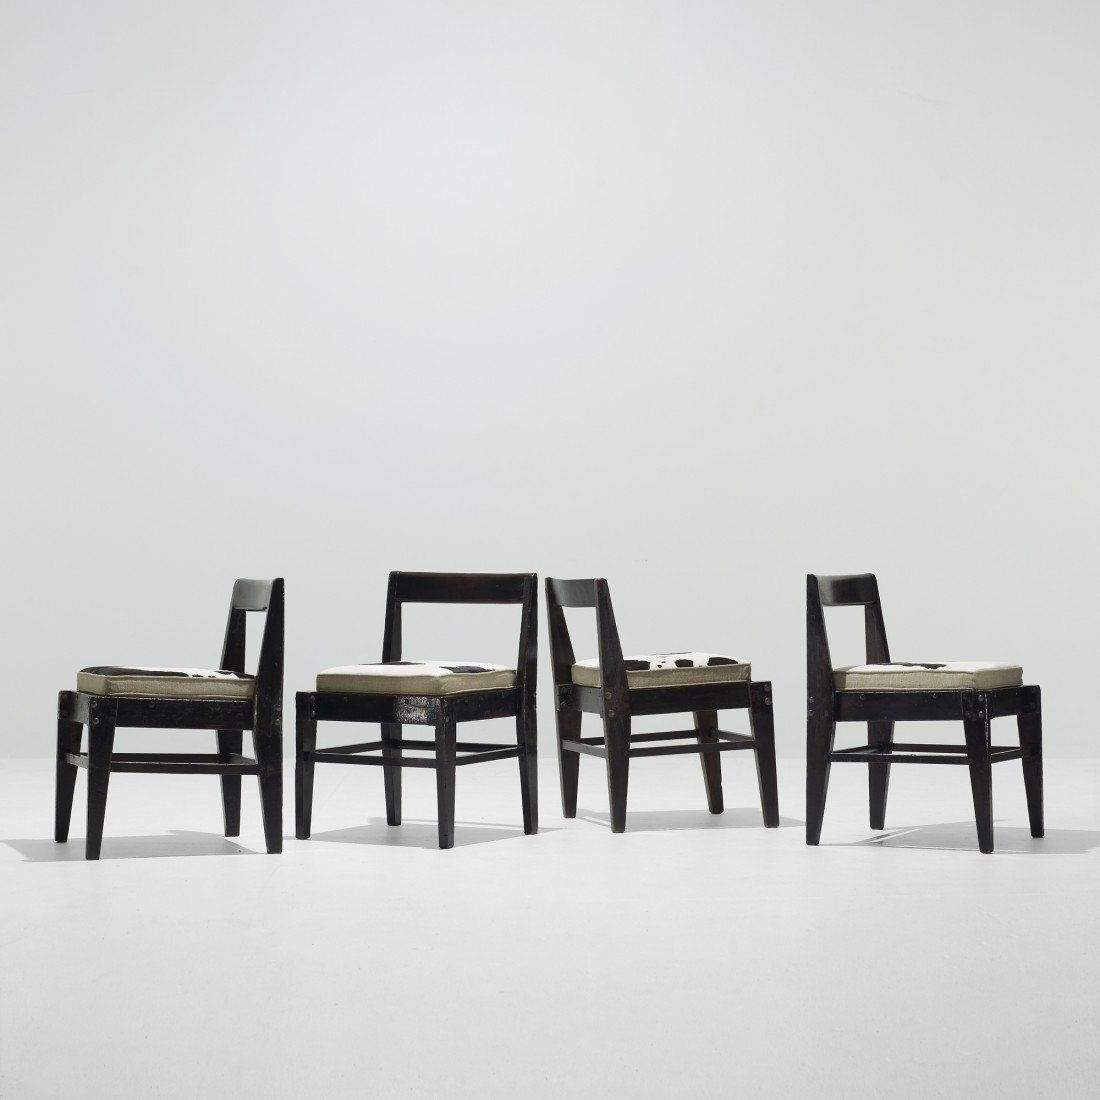 119: Pierre Jeanneret set of four chairs